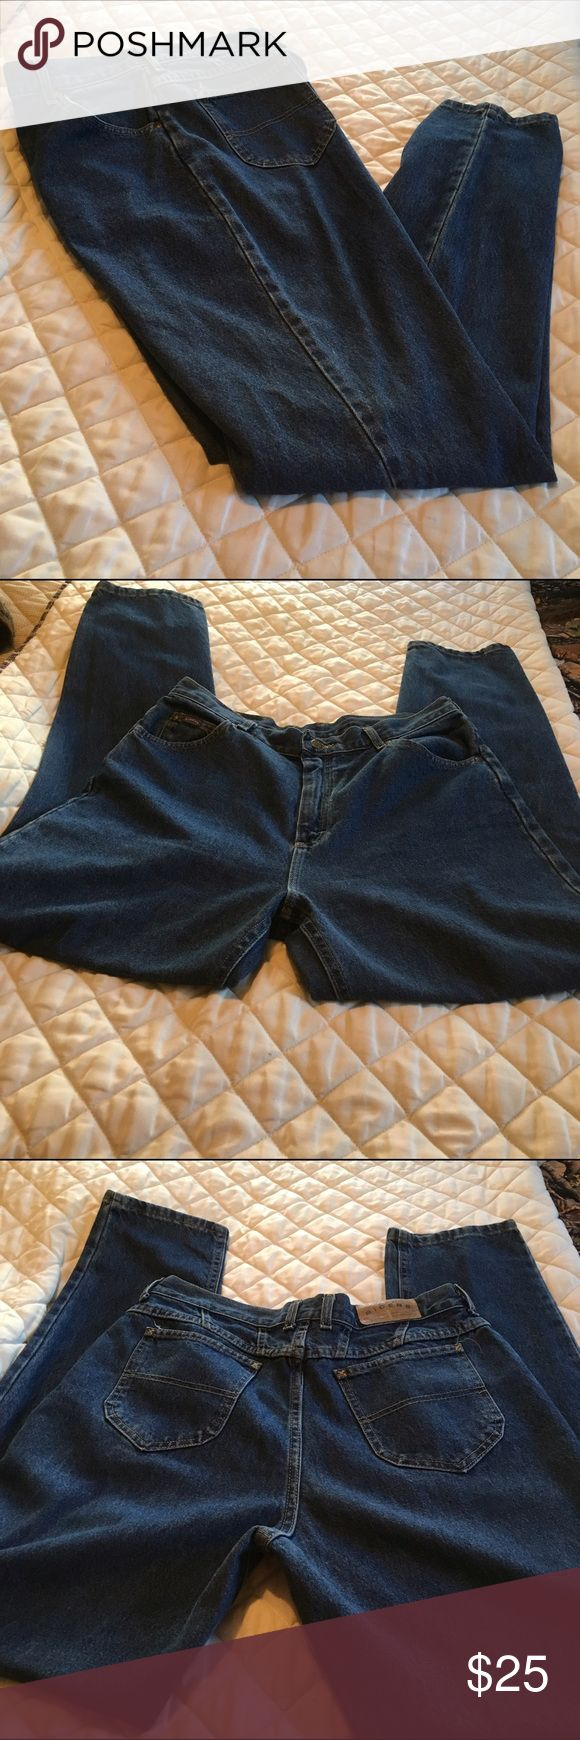 Denim Riders Jeans Women 16L 👖Maybe worn once Denim Riders jeans excellent condition, smoke free home.              Women's 16L Riders Jeans Straight Leg